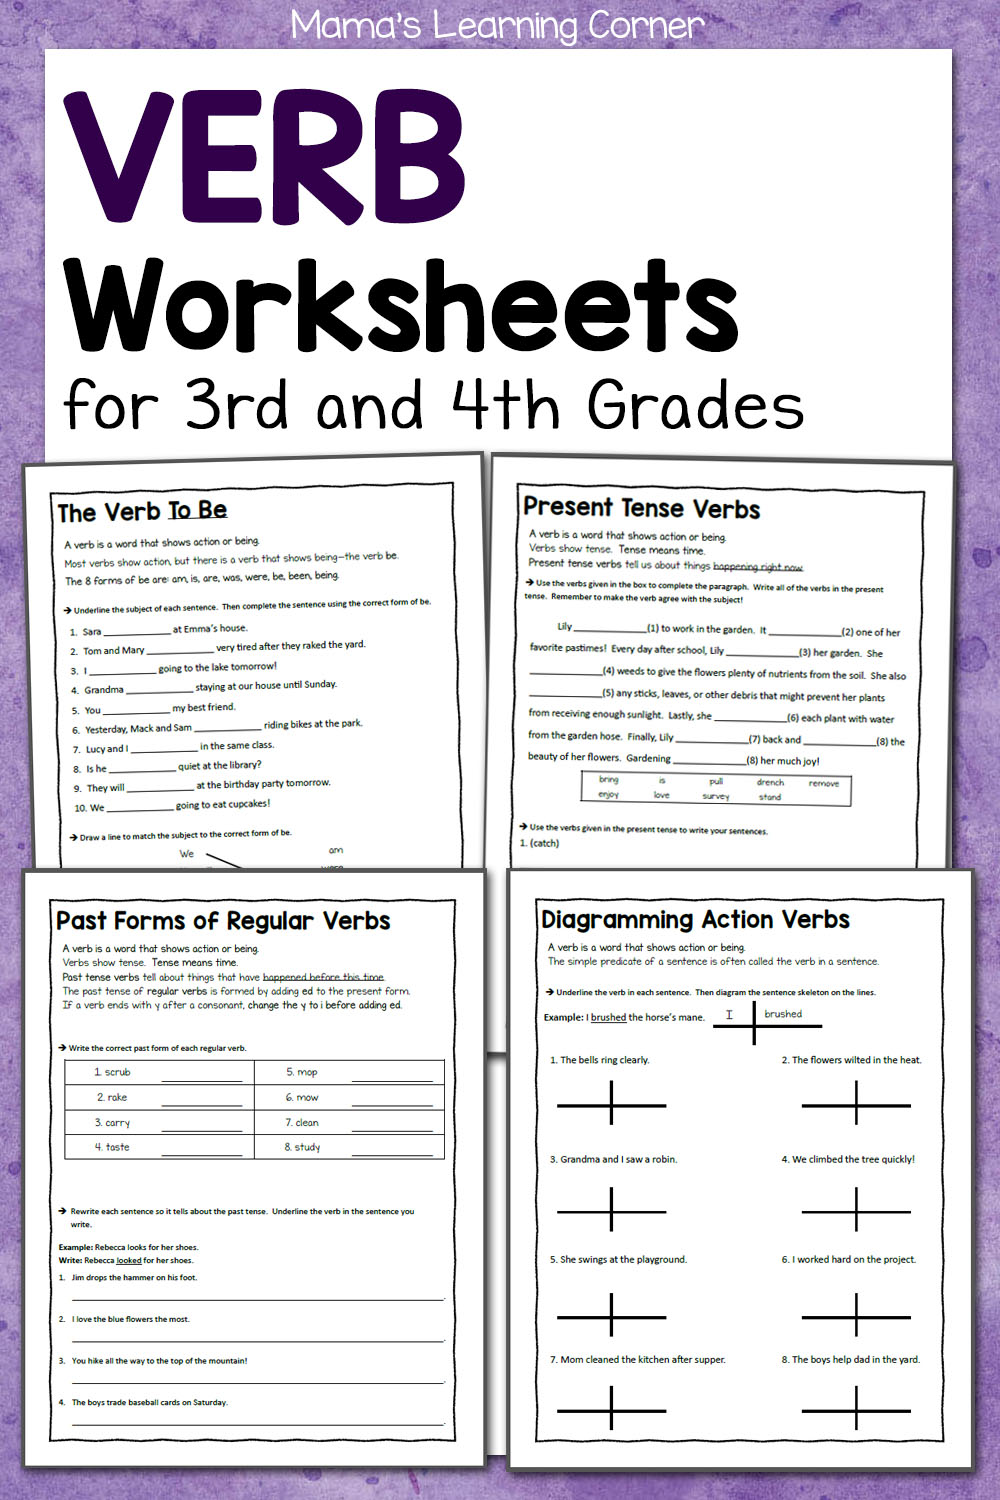 - Verb Worksheets For 3rd And 4th Grades - Mamas Learning Corner